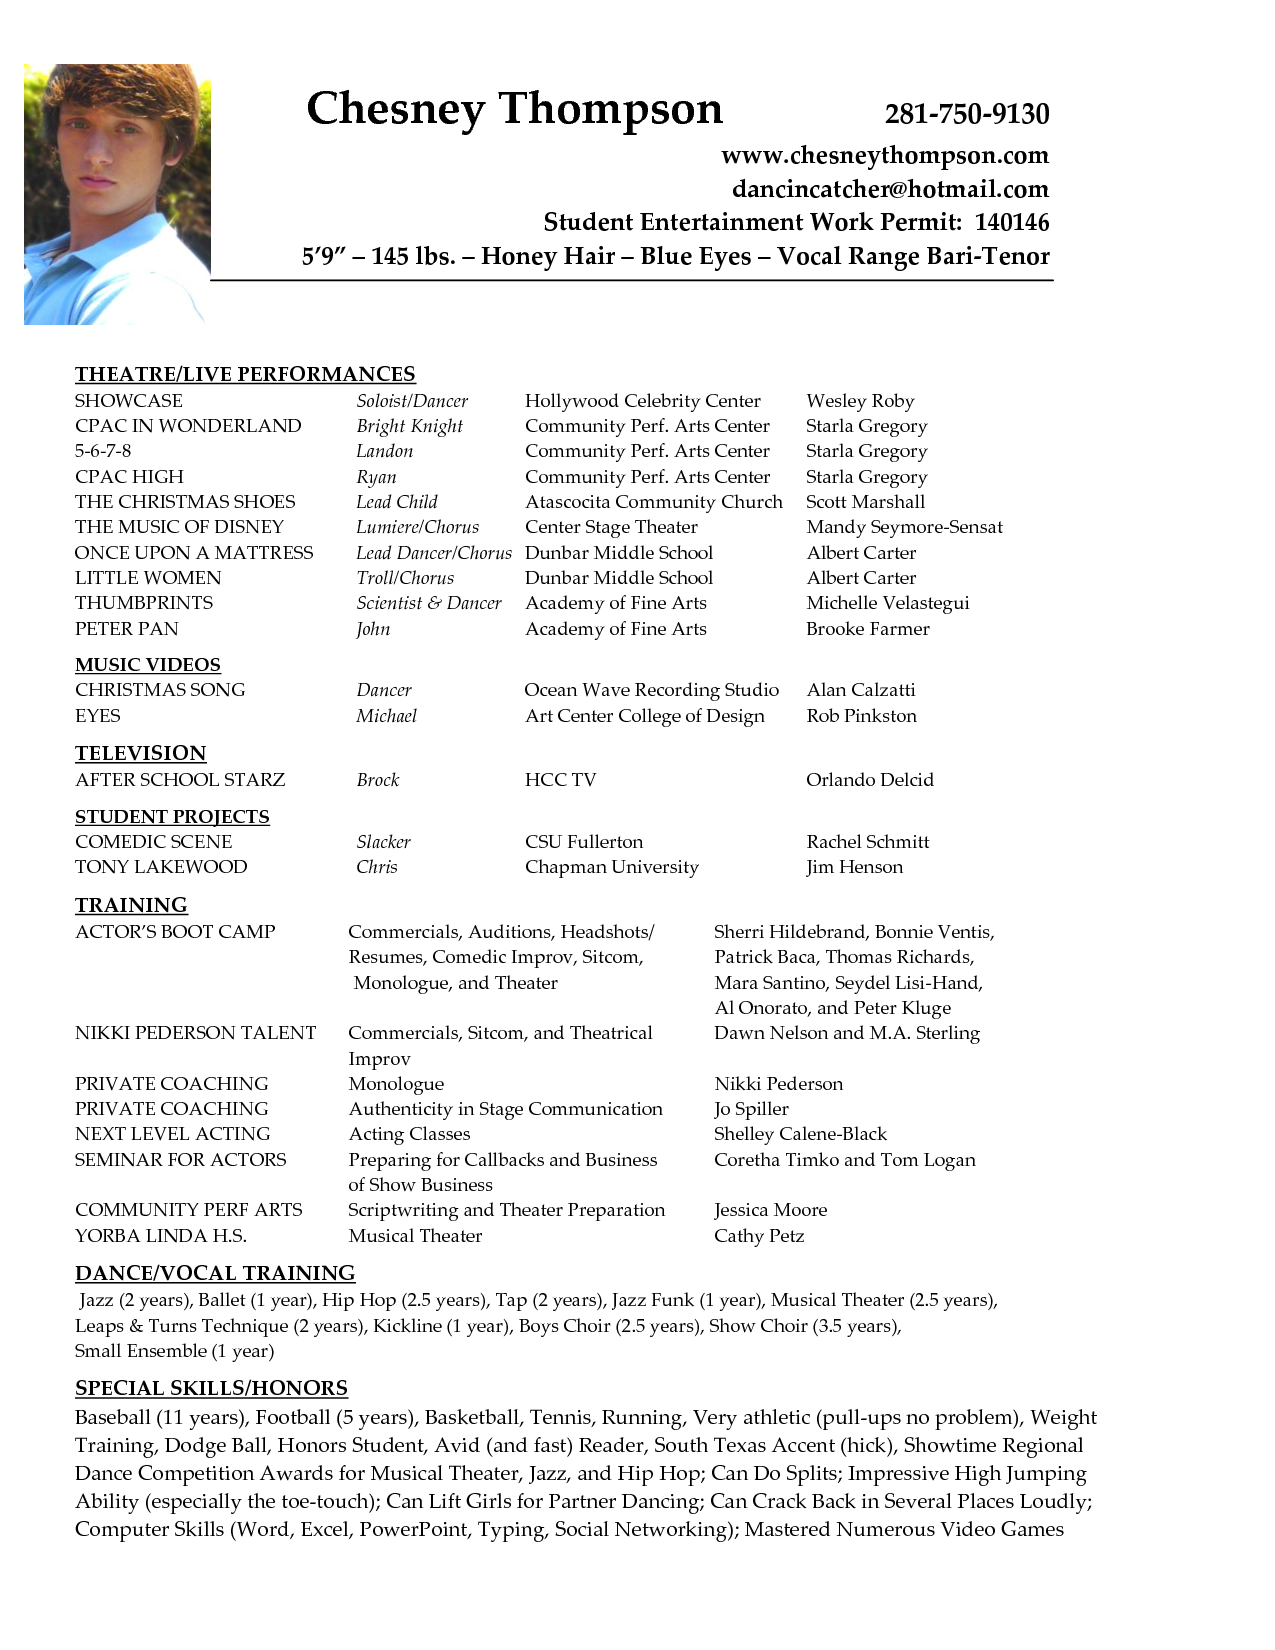 Sample Acting Resume Theatre Resume Template Builder Dfdqkmt Barb Jones Photography